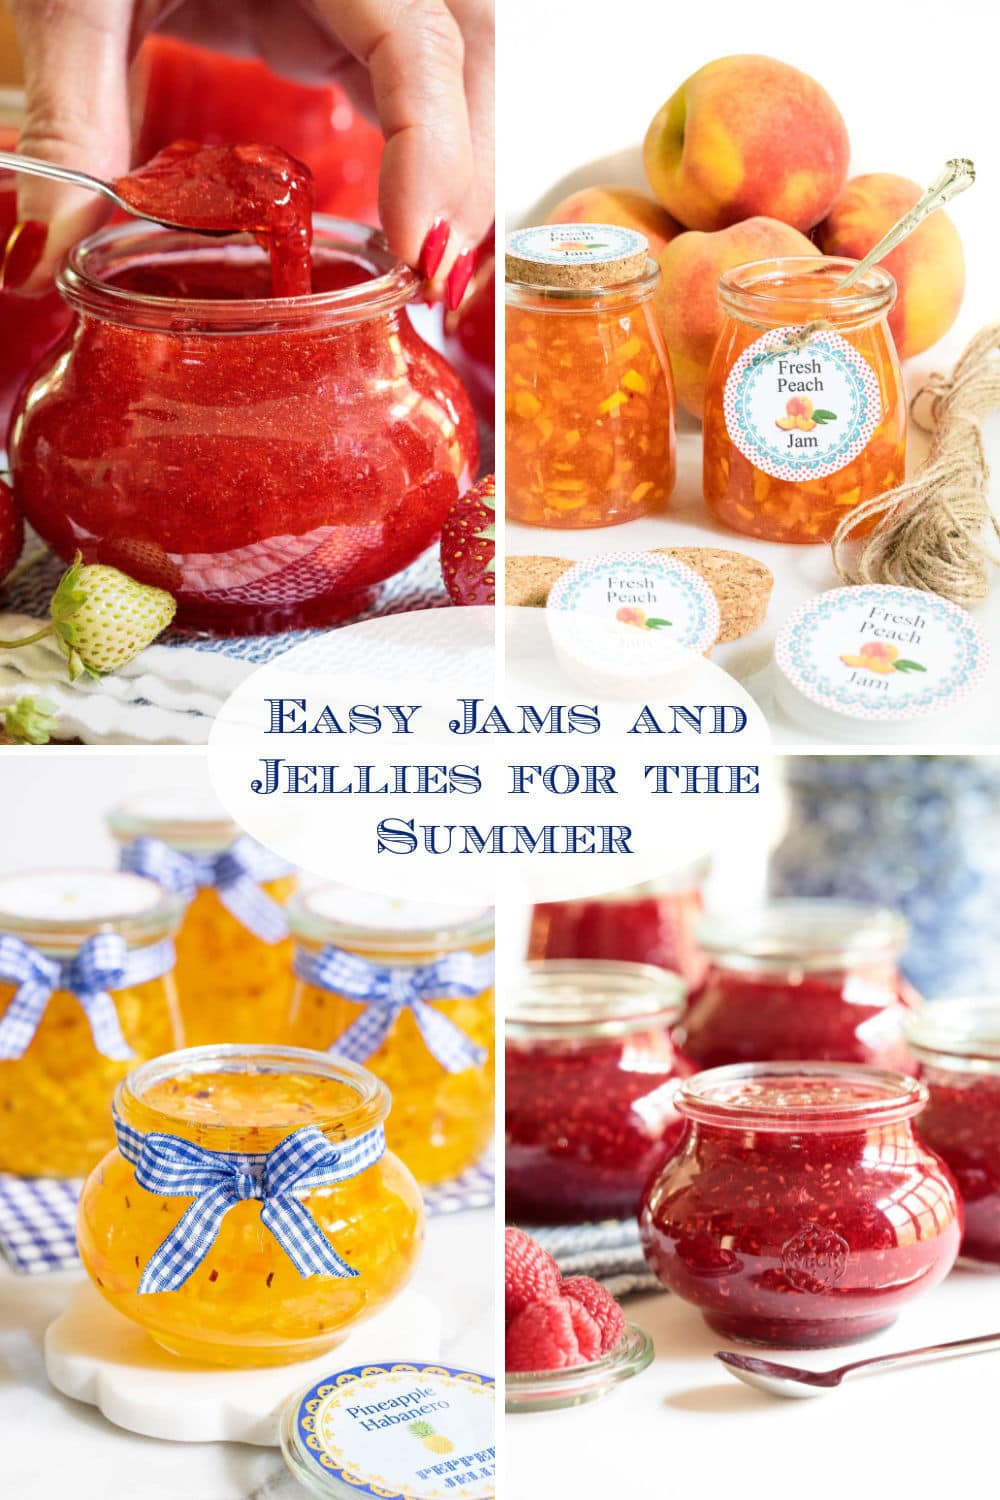 Preserve the Taste of  Summer with These Easy Jam and Jelly Recipes!